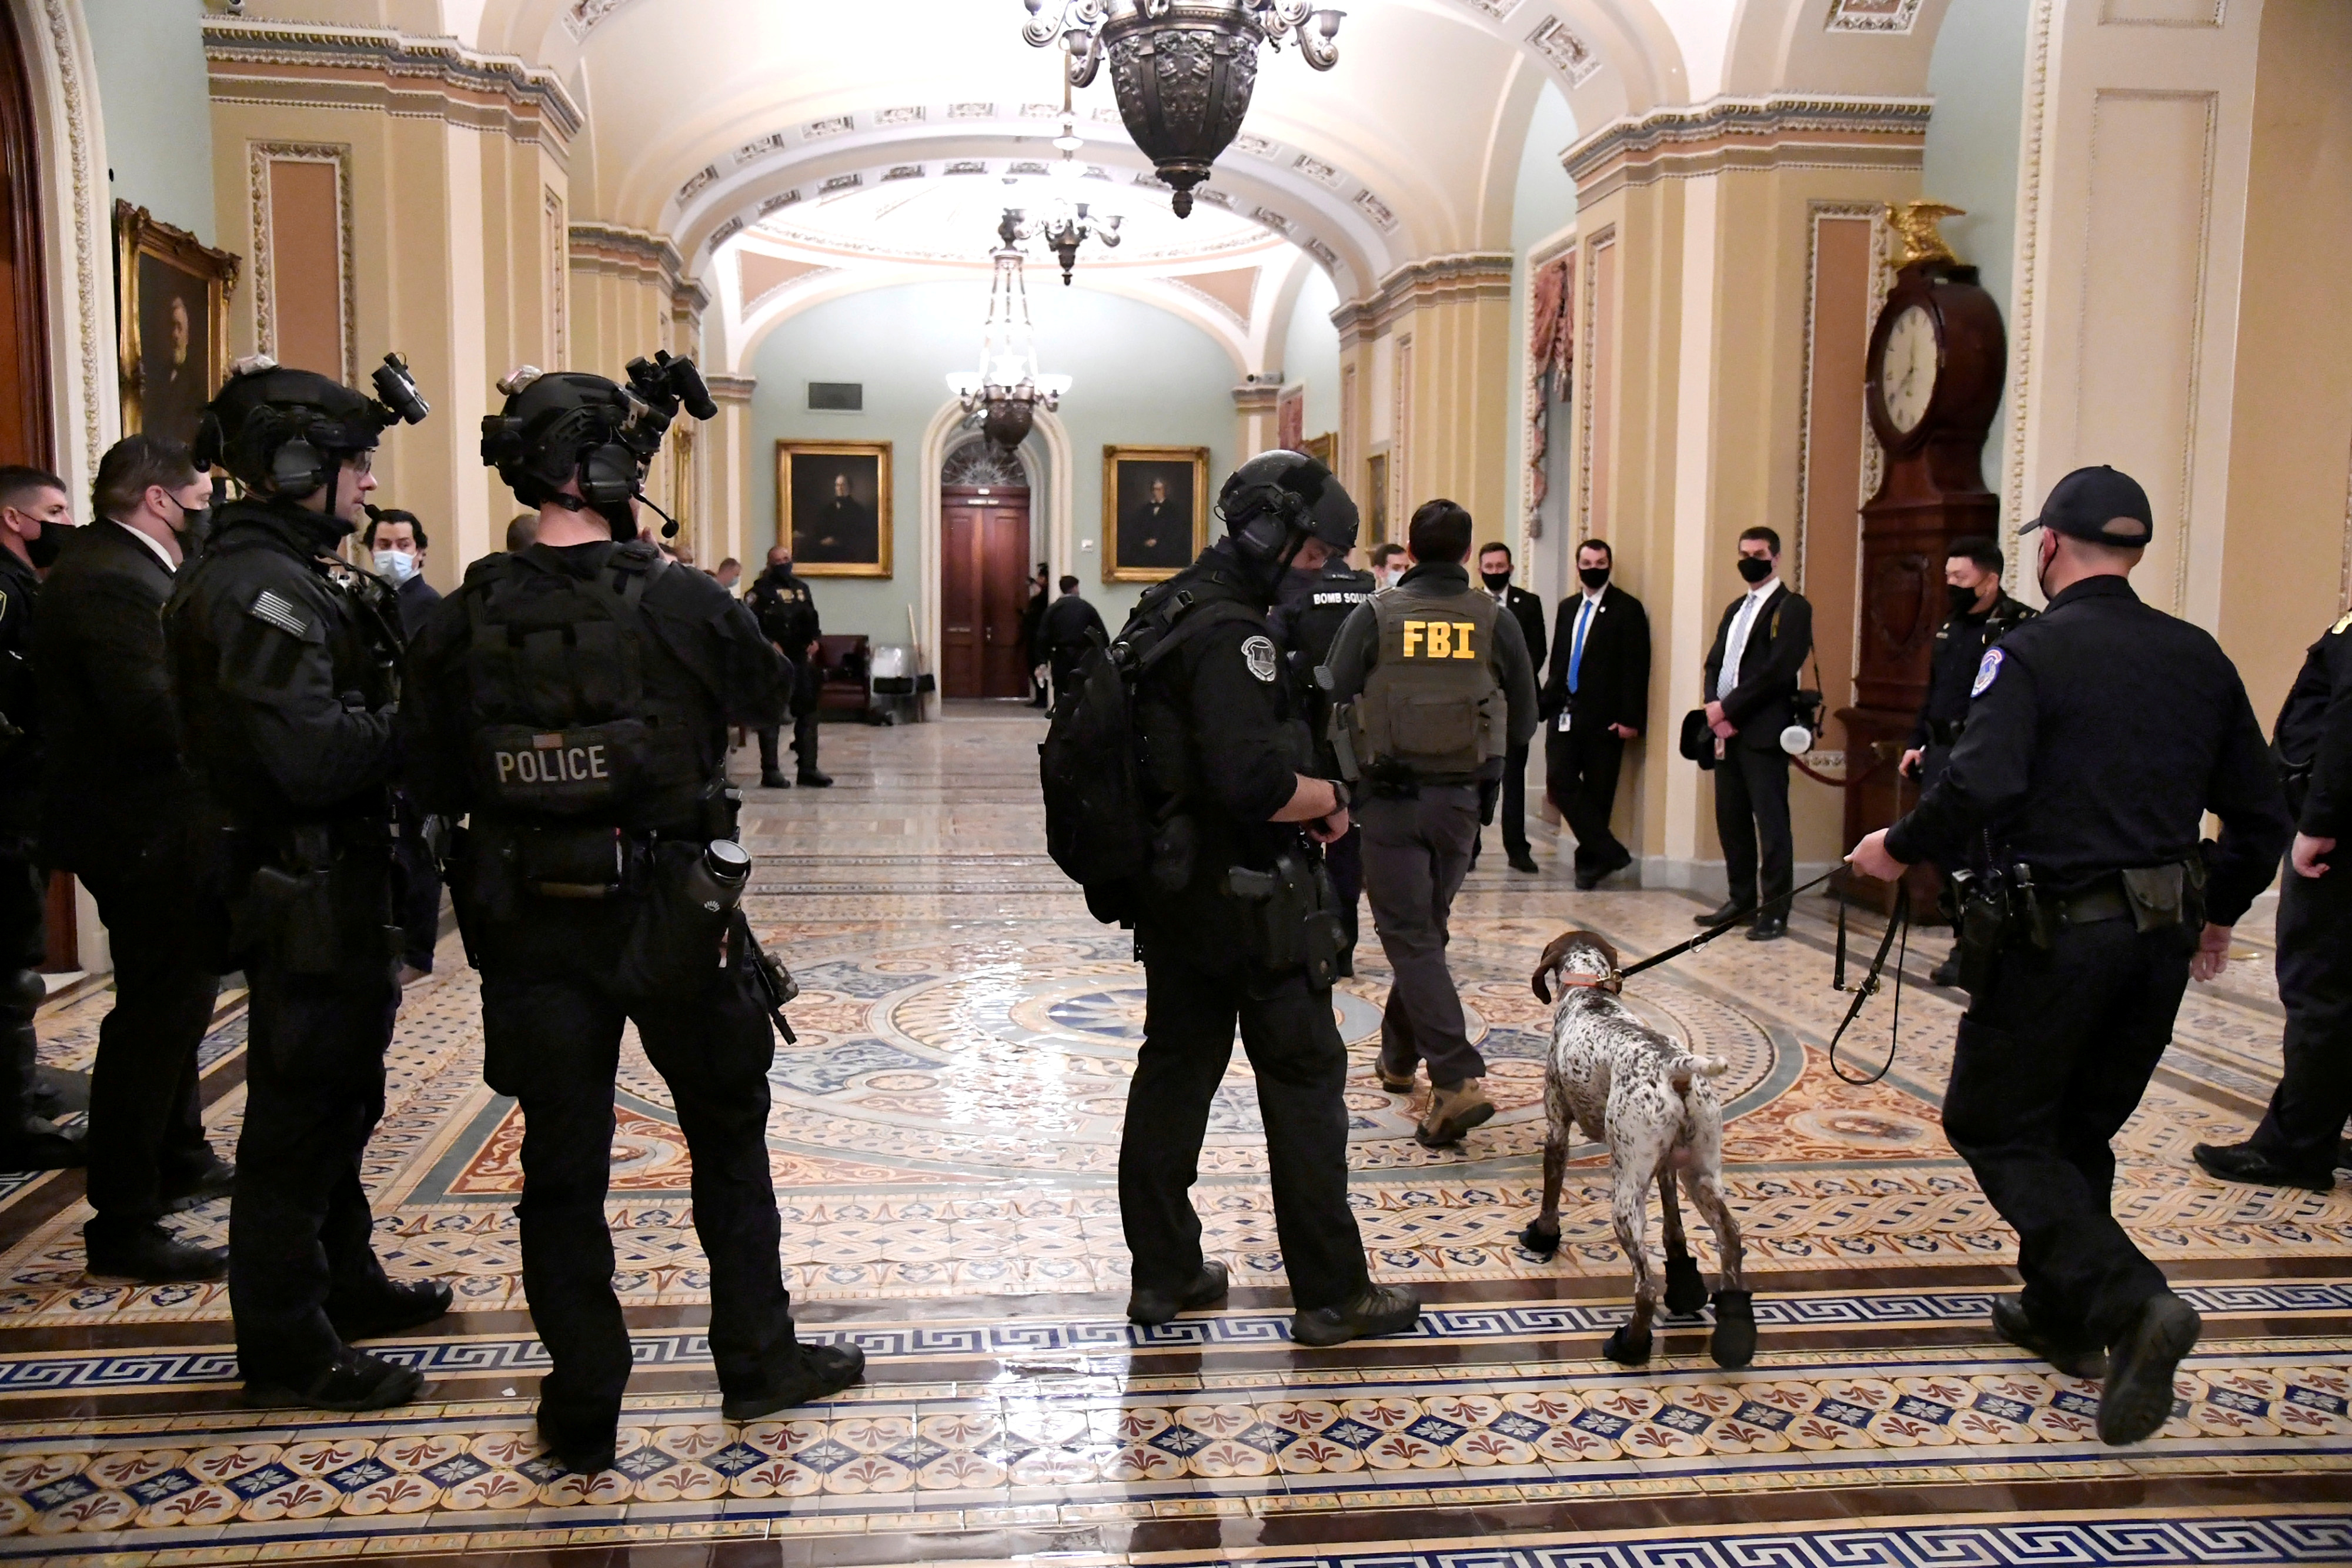 A heavy police force is evident at the Senate door after supporters of President Donald Trump breached security at the U.S. Capitol, rioting through the Senate and House and disrupting the certification of President-elect Joe Biden, in Washington, U.S. January 6, 2021. REUTERS/Mike Theiler/File Photo